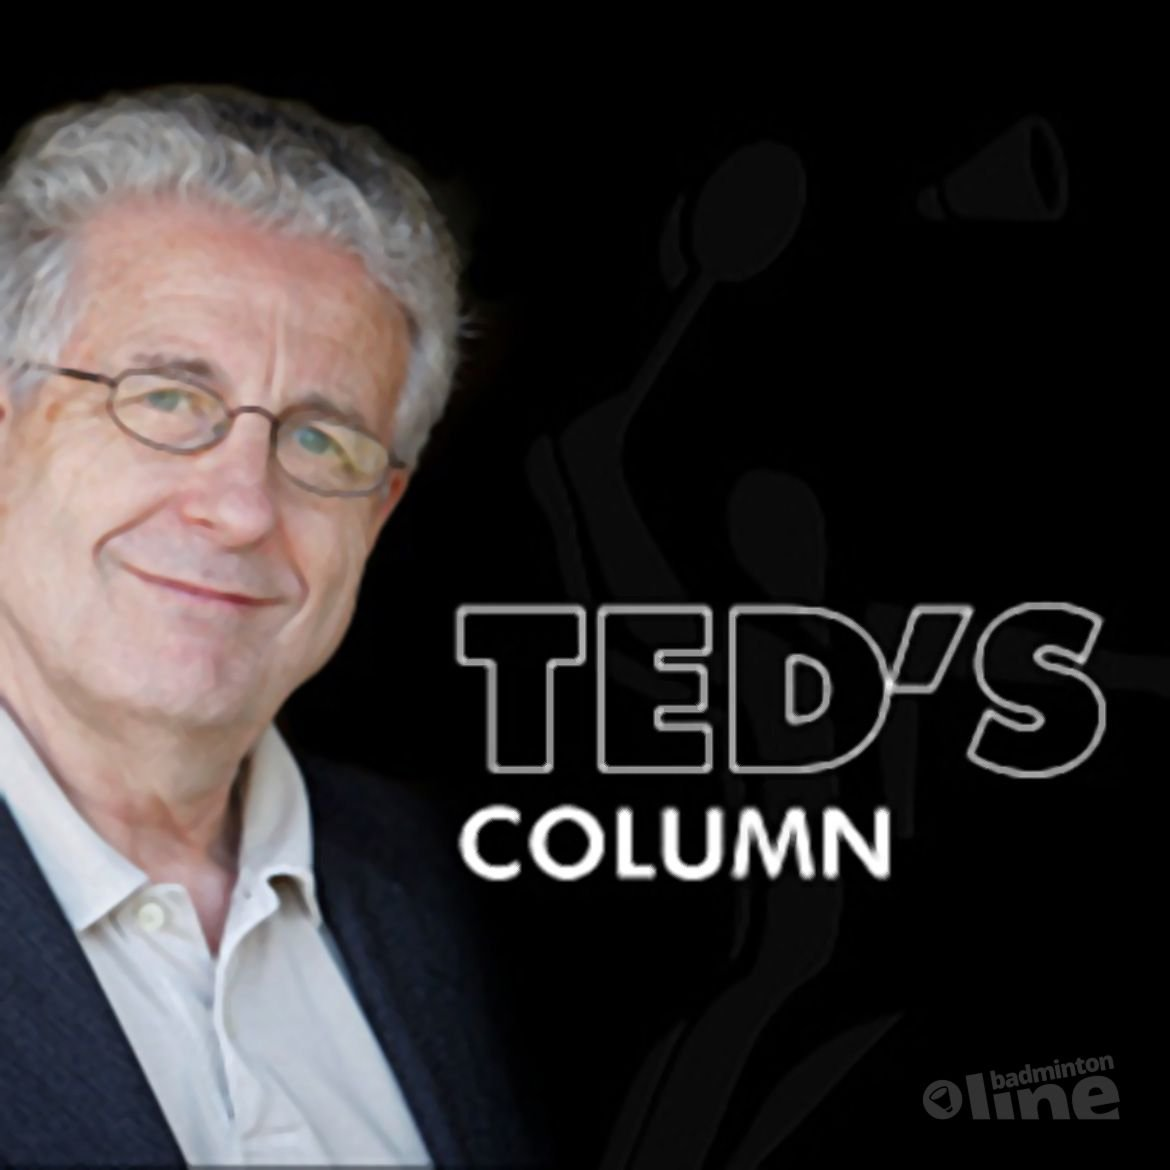 Ted's Column (week 42)